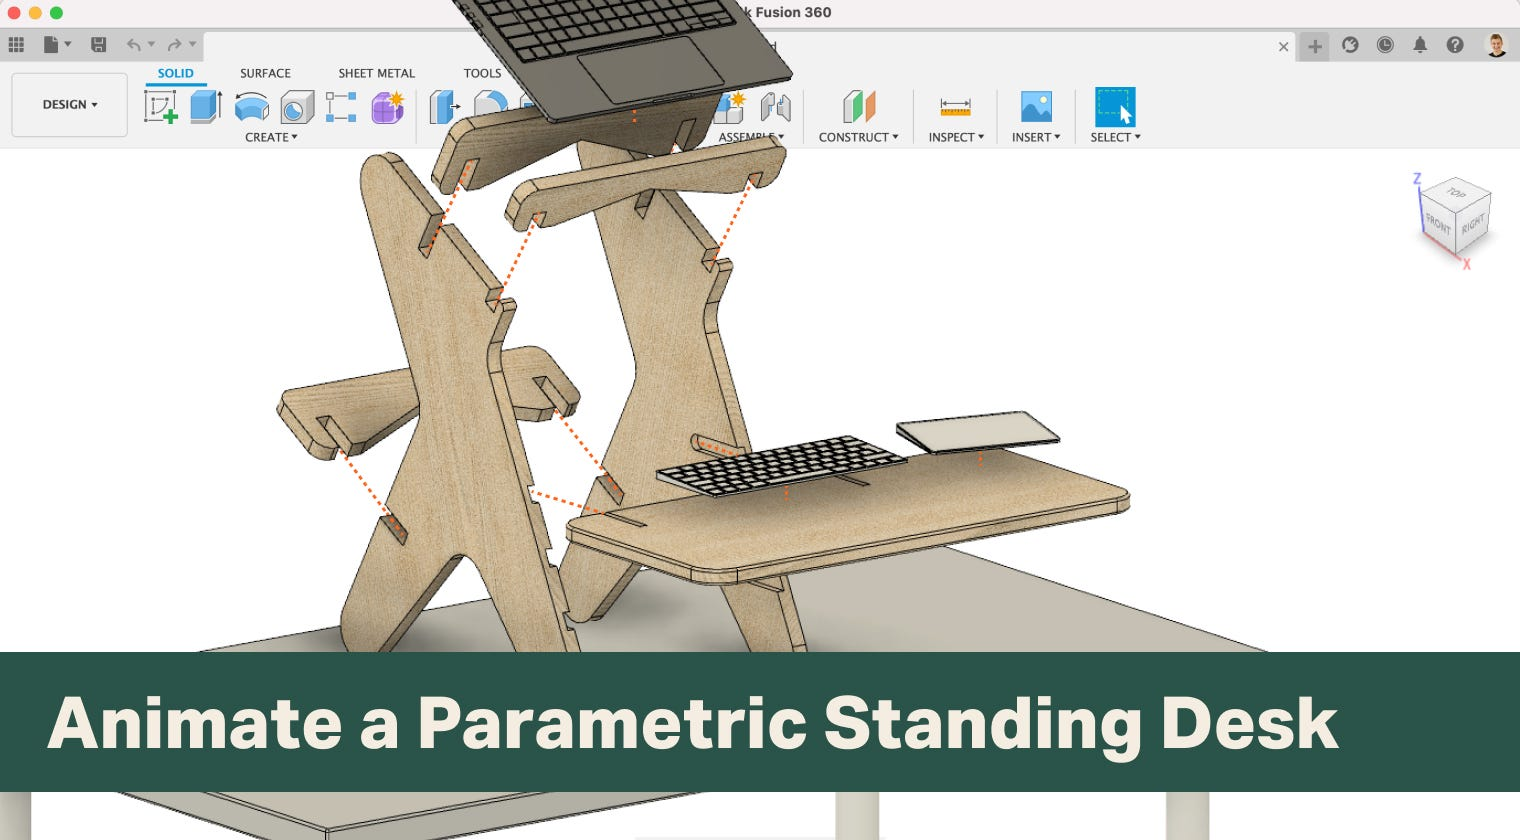 Animate a Parametric Standing Desk in Fusion 360